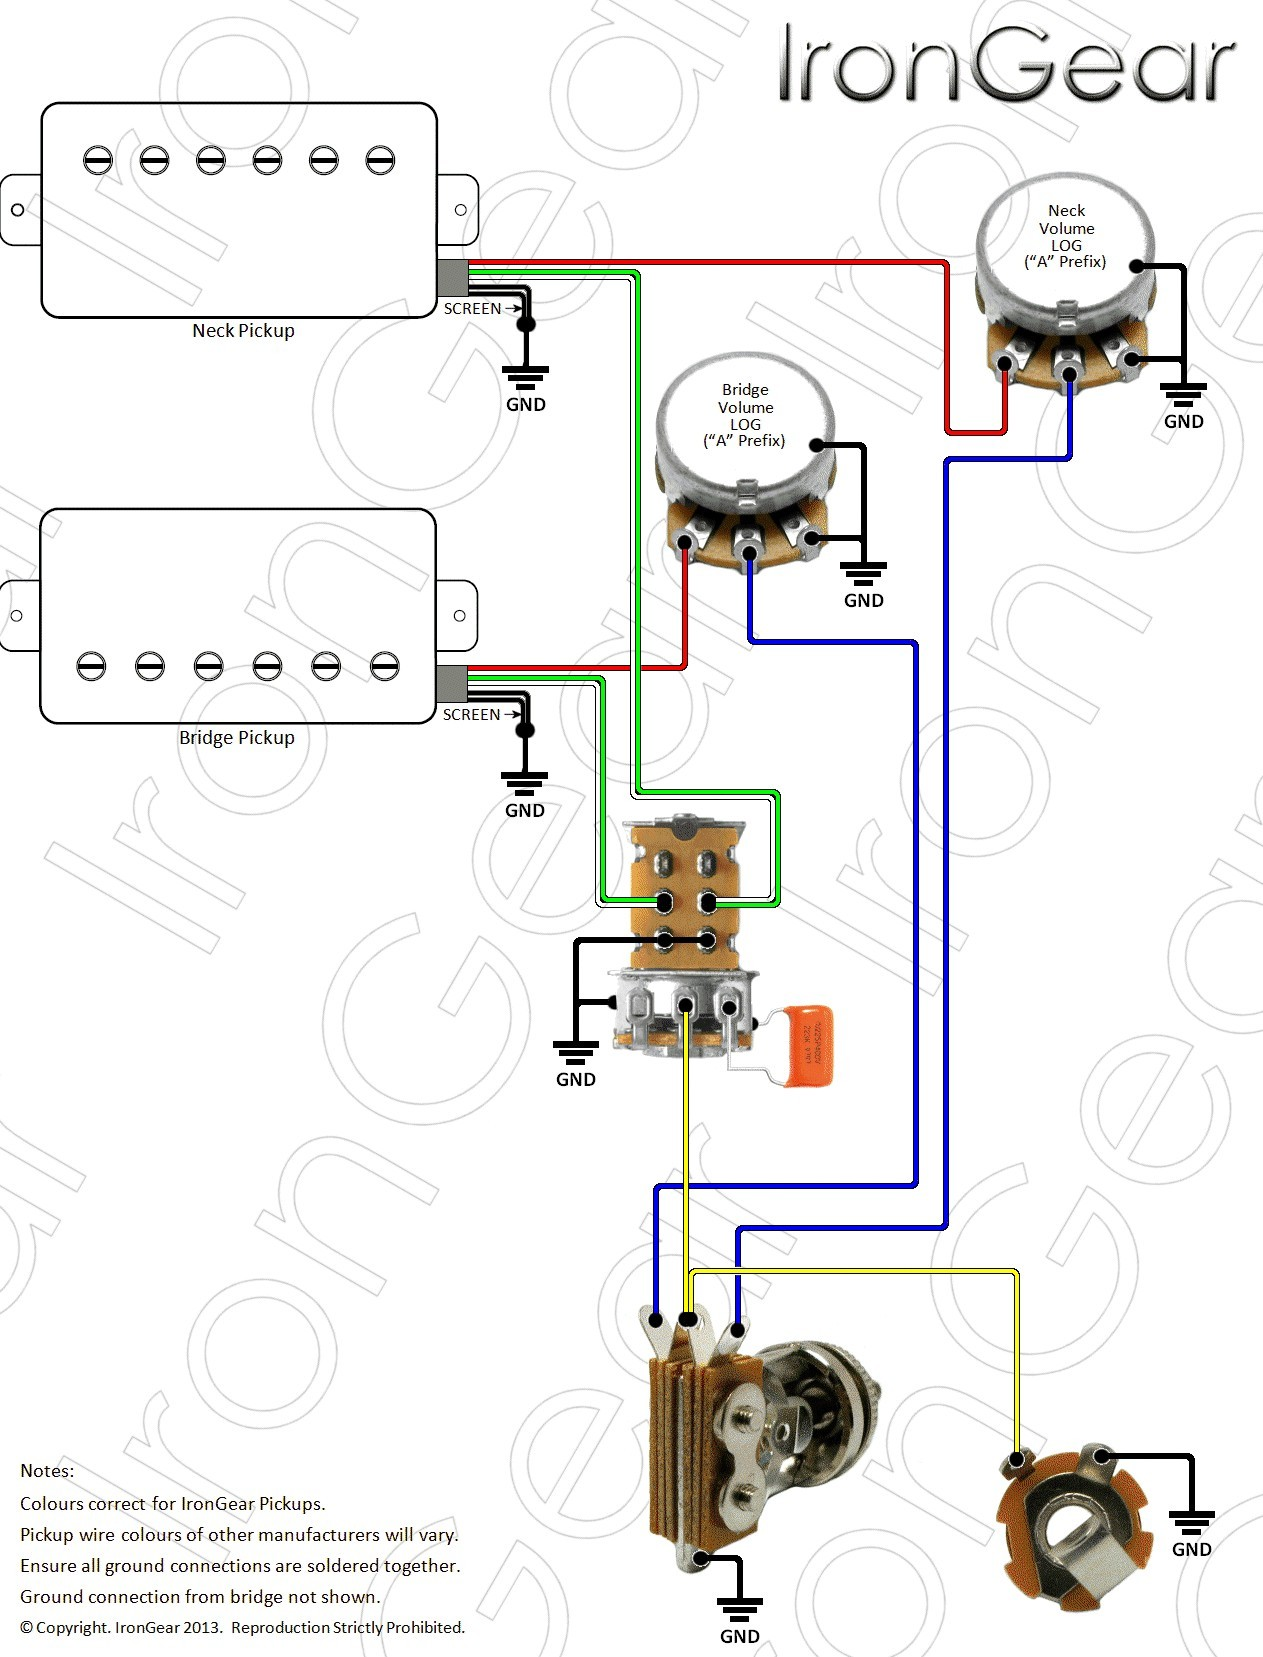 Emg 1 Volume 2 Tone Wiring Diagrams - Wiring Diagrams Schema  Humbucker Pickup Wiring Diagram on humbucker wiring-diagram af55 art, humbucker pickup parts, 2 humbucker 5-way switch wiring diagram, humbucker pickup assembly, les paul wiring diagram, humbucker 1 volume 1 t-one wiring diagram, volume control wiring diagram, humbucker wiring options, 2 volume 1 tone wiring diagram, strat wiring diagram, seymour duncan wiring diagram, humbucker pickup dimensions, fender humbucker wiring diagram, humbucker pickups for stratocaster, humbucker wiring colors, humbucker pickups explained, cigar box guitar wiring diagram, humbucker pickup frame, humbucker pickup system, explorer guitar wiring diagram,